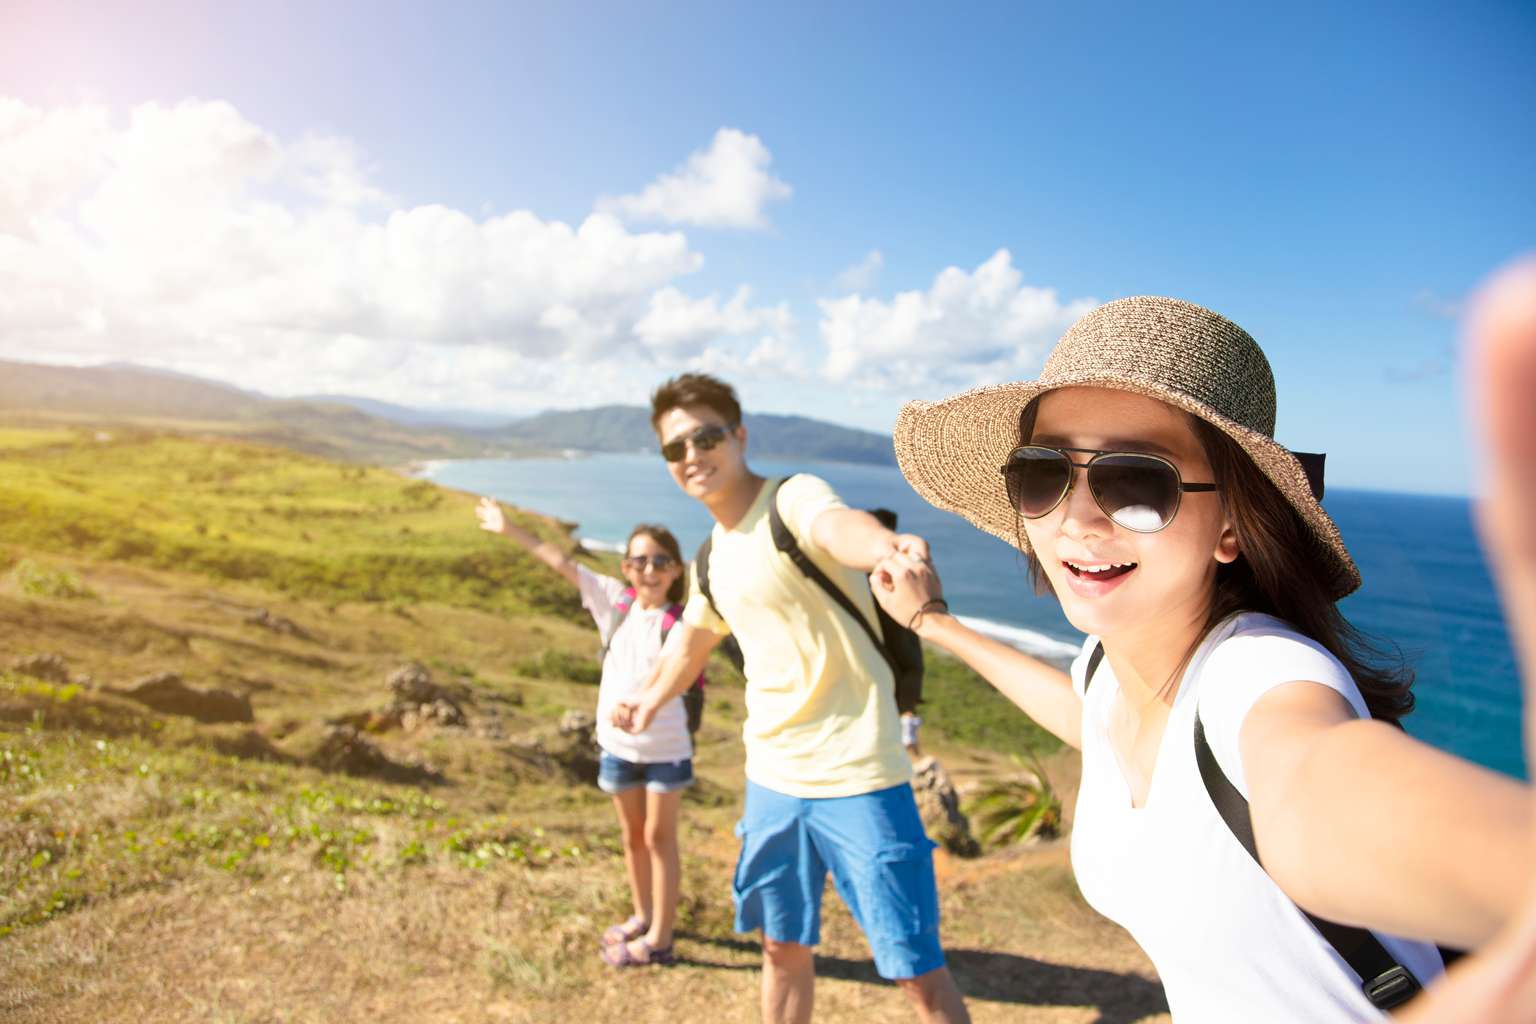 Enjoy exclusive discount on hotels with Jetstar Hotels